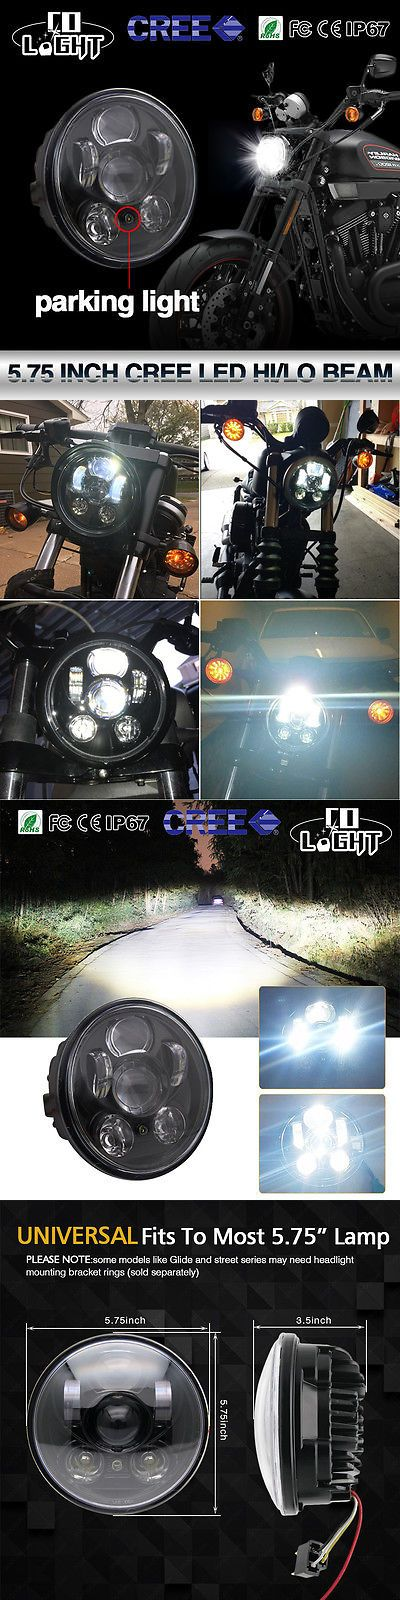 motorcycle parts: 5.75 Led Projection Daymaker Headlight For Harley Sportster Xl 883 1200 Dyna -> BUY IT NOW ONLY: $39.97 on eBay!